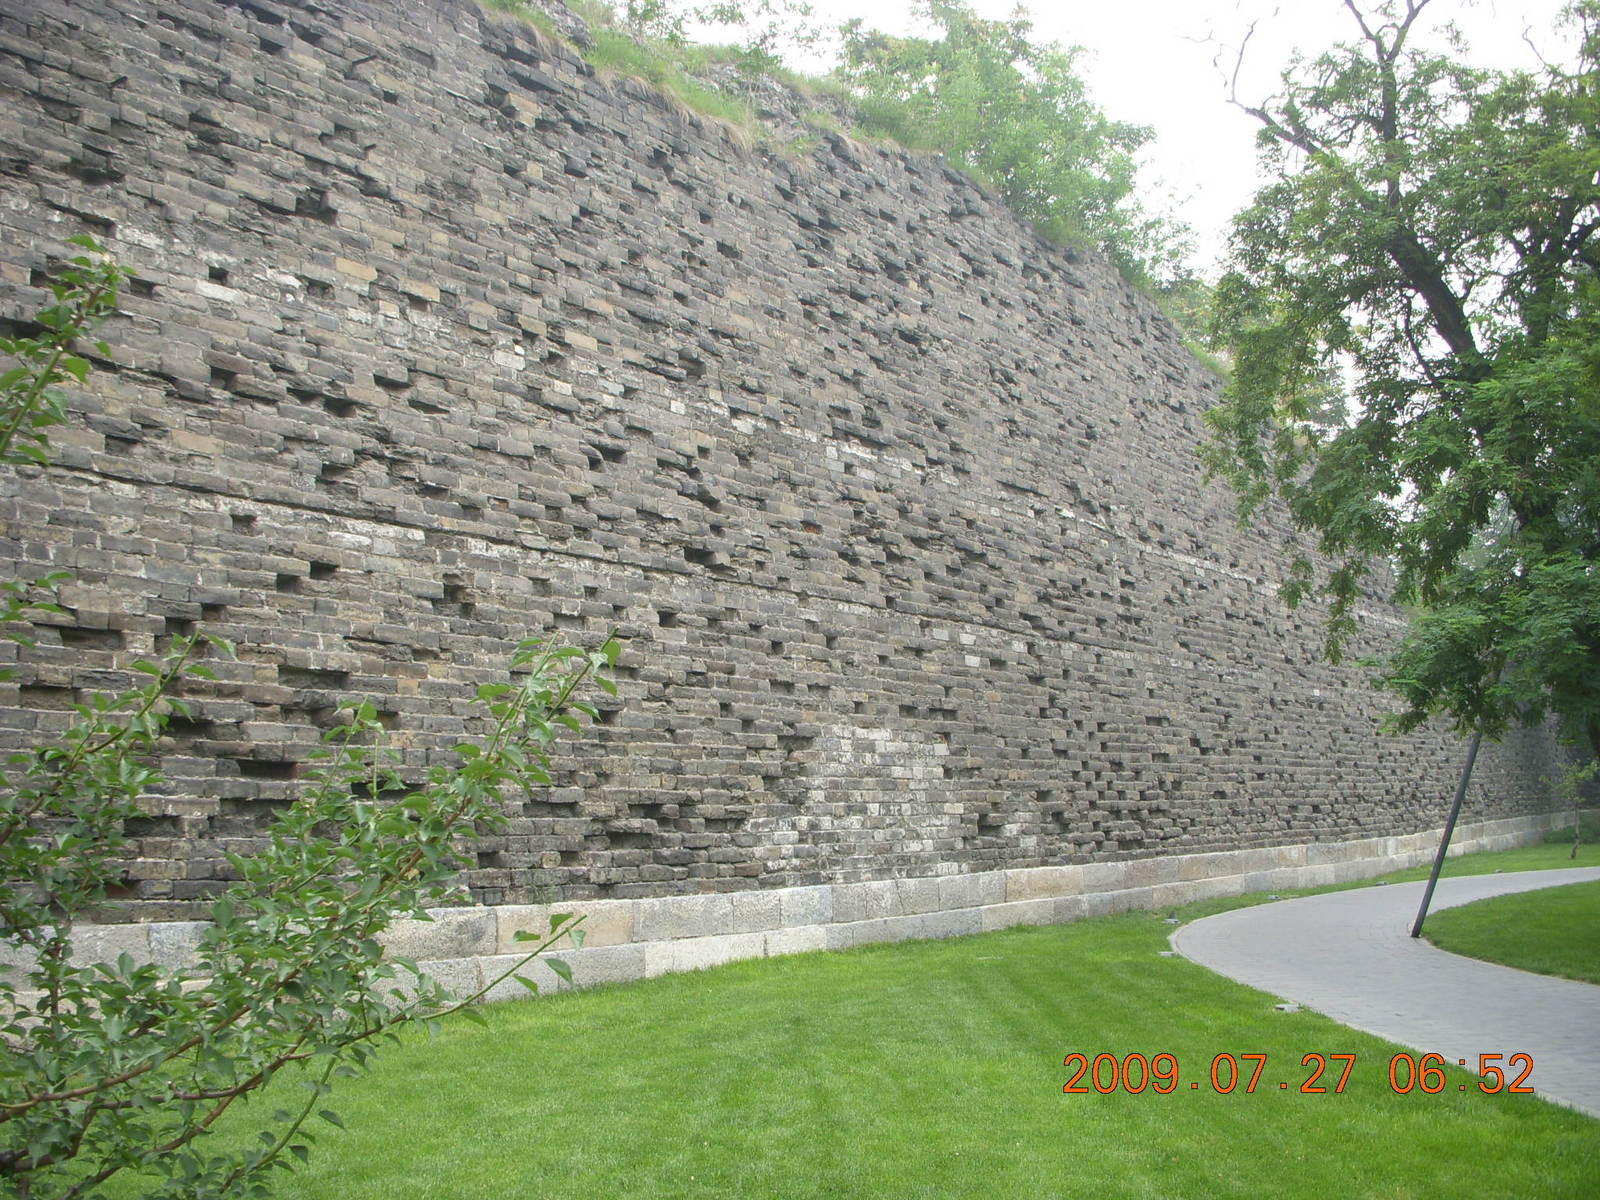 China eclipse - Beijing morning run - ancient Ming Dynasty wall